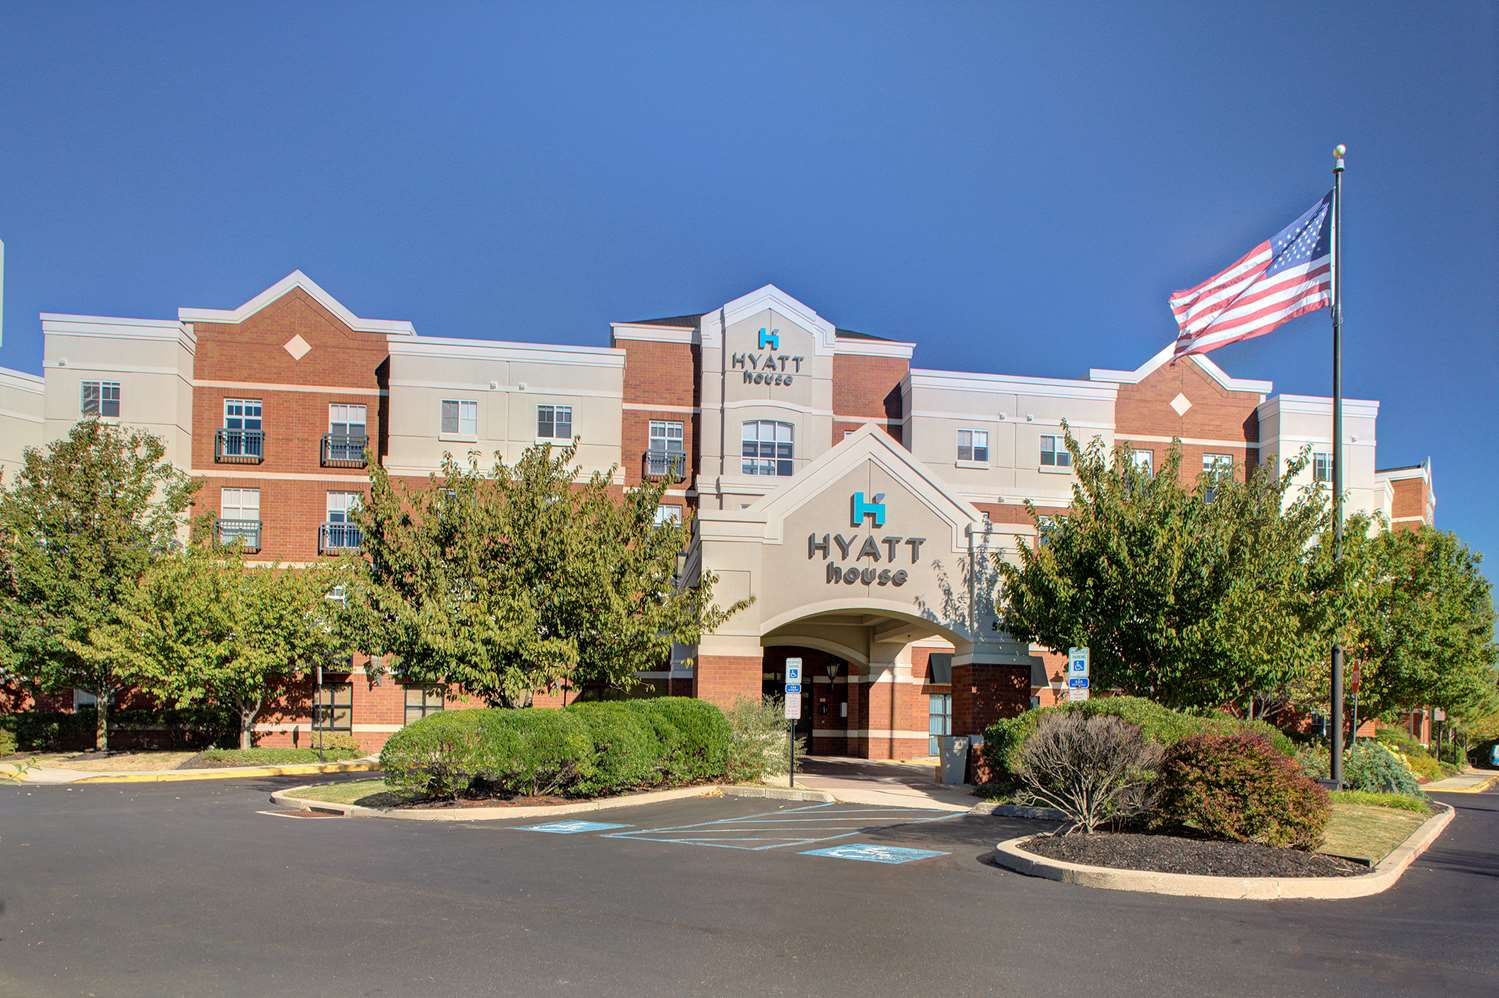 Hyatt House Hotel East Norriton